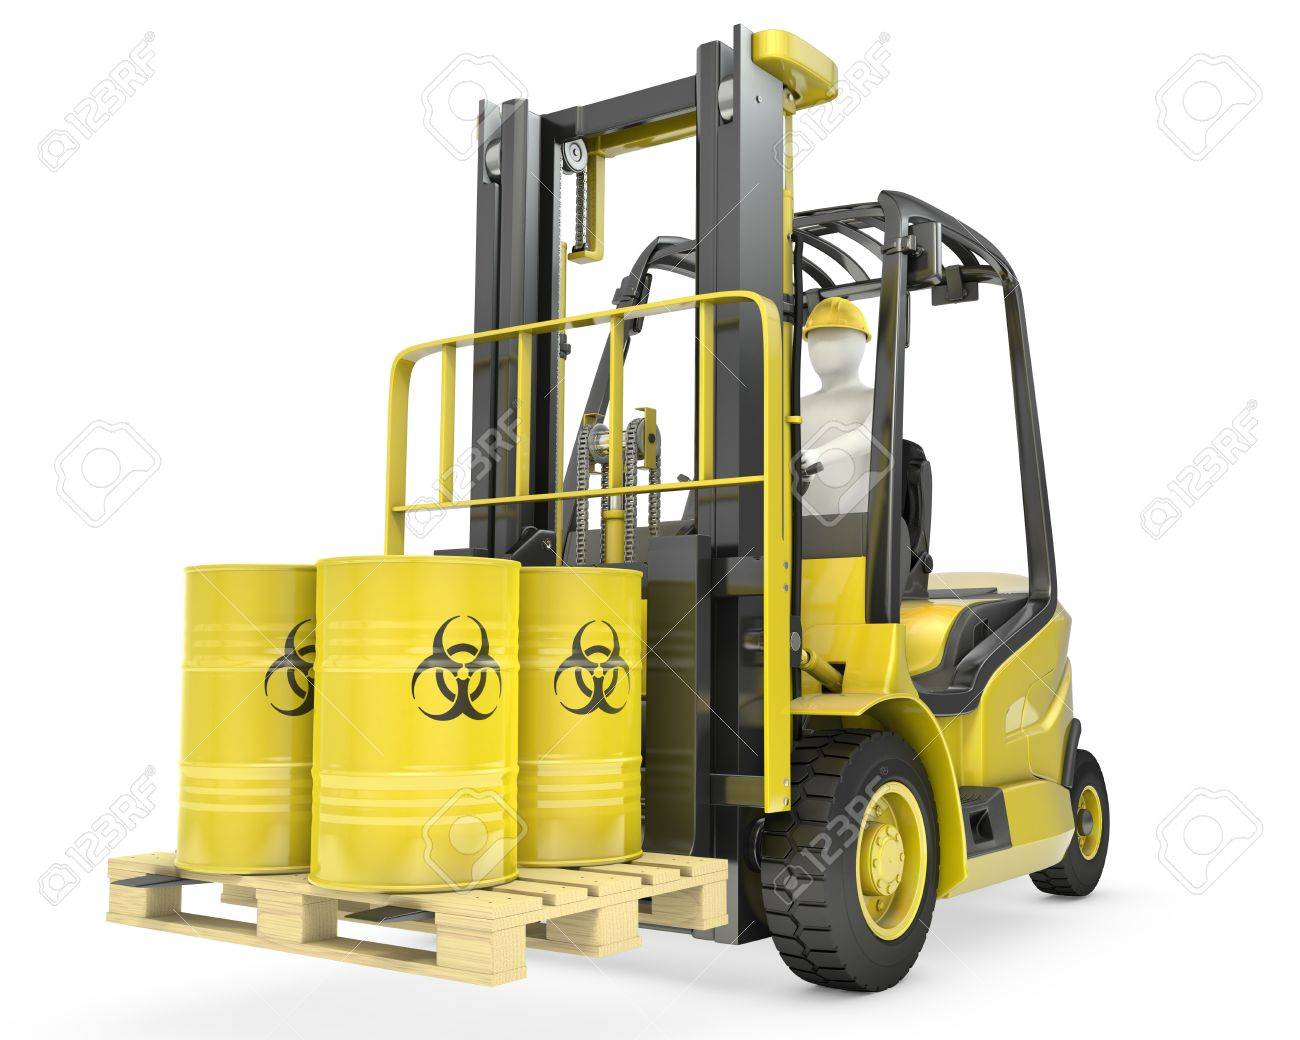 Fork lift truck with biohazard barrels, isolated on white background Stock Photo - 14839973